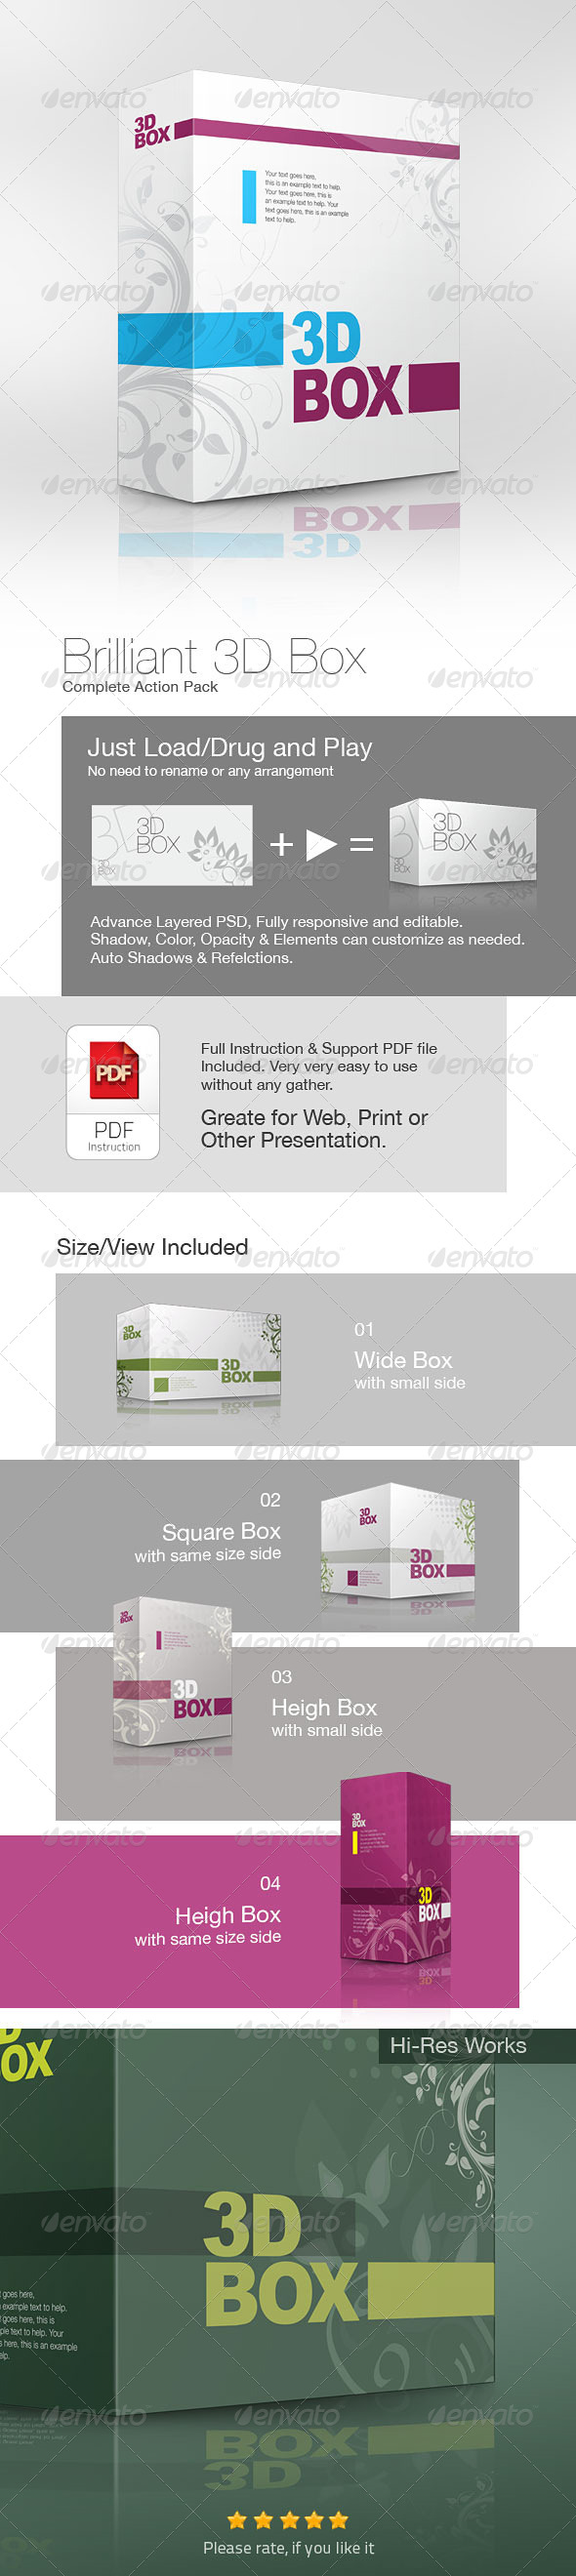 GraphicRiver Brilliant 3D Box Action Pack 4787743